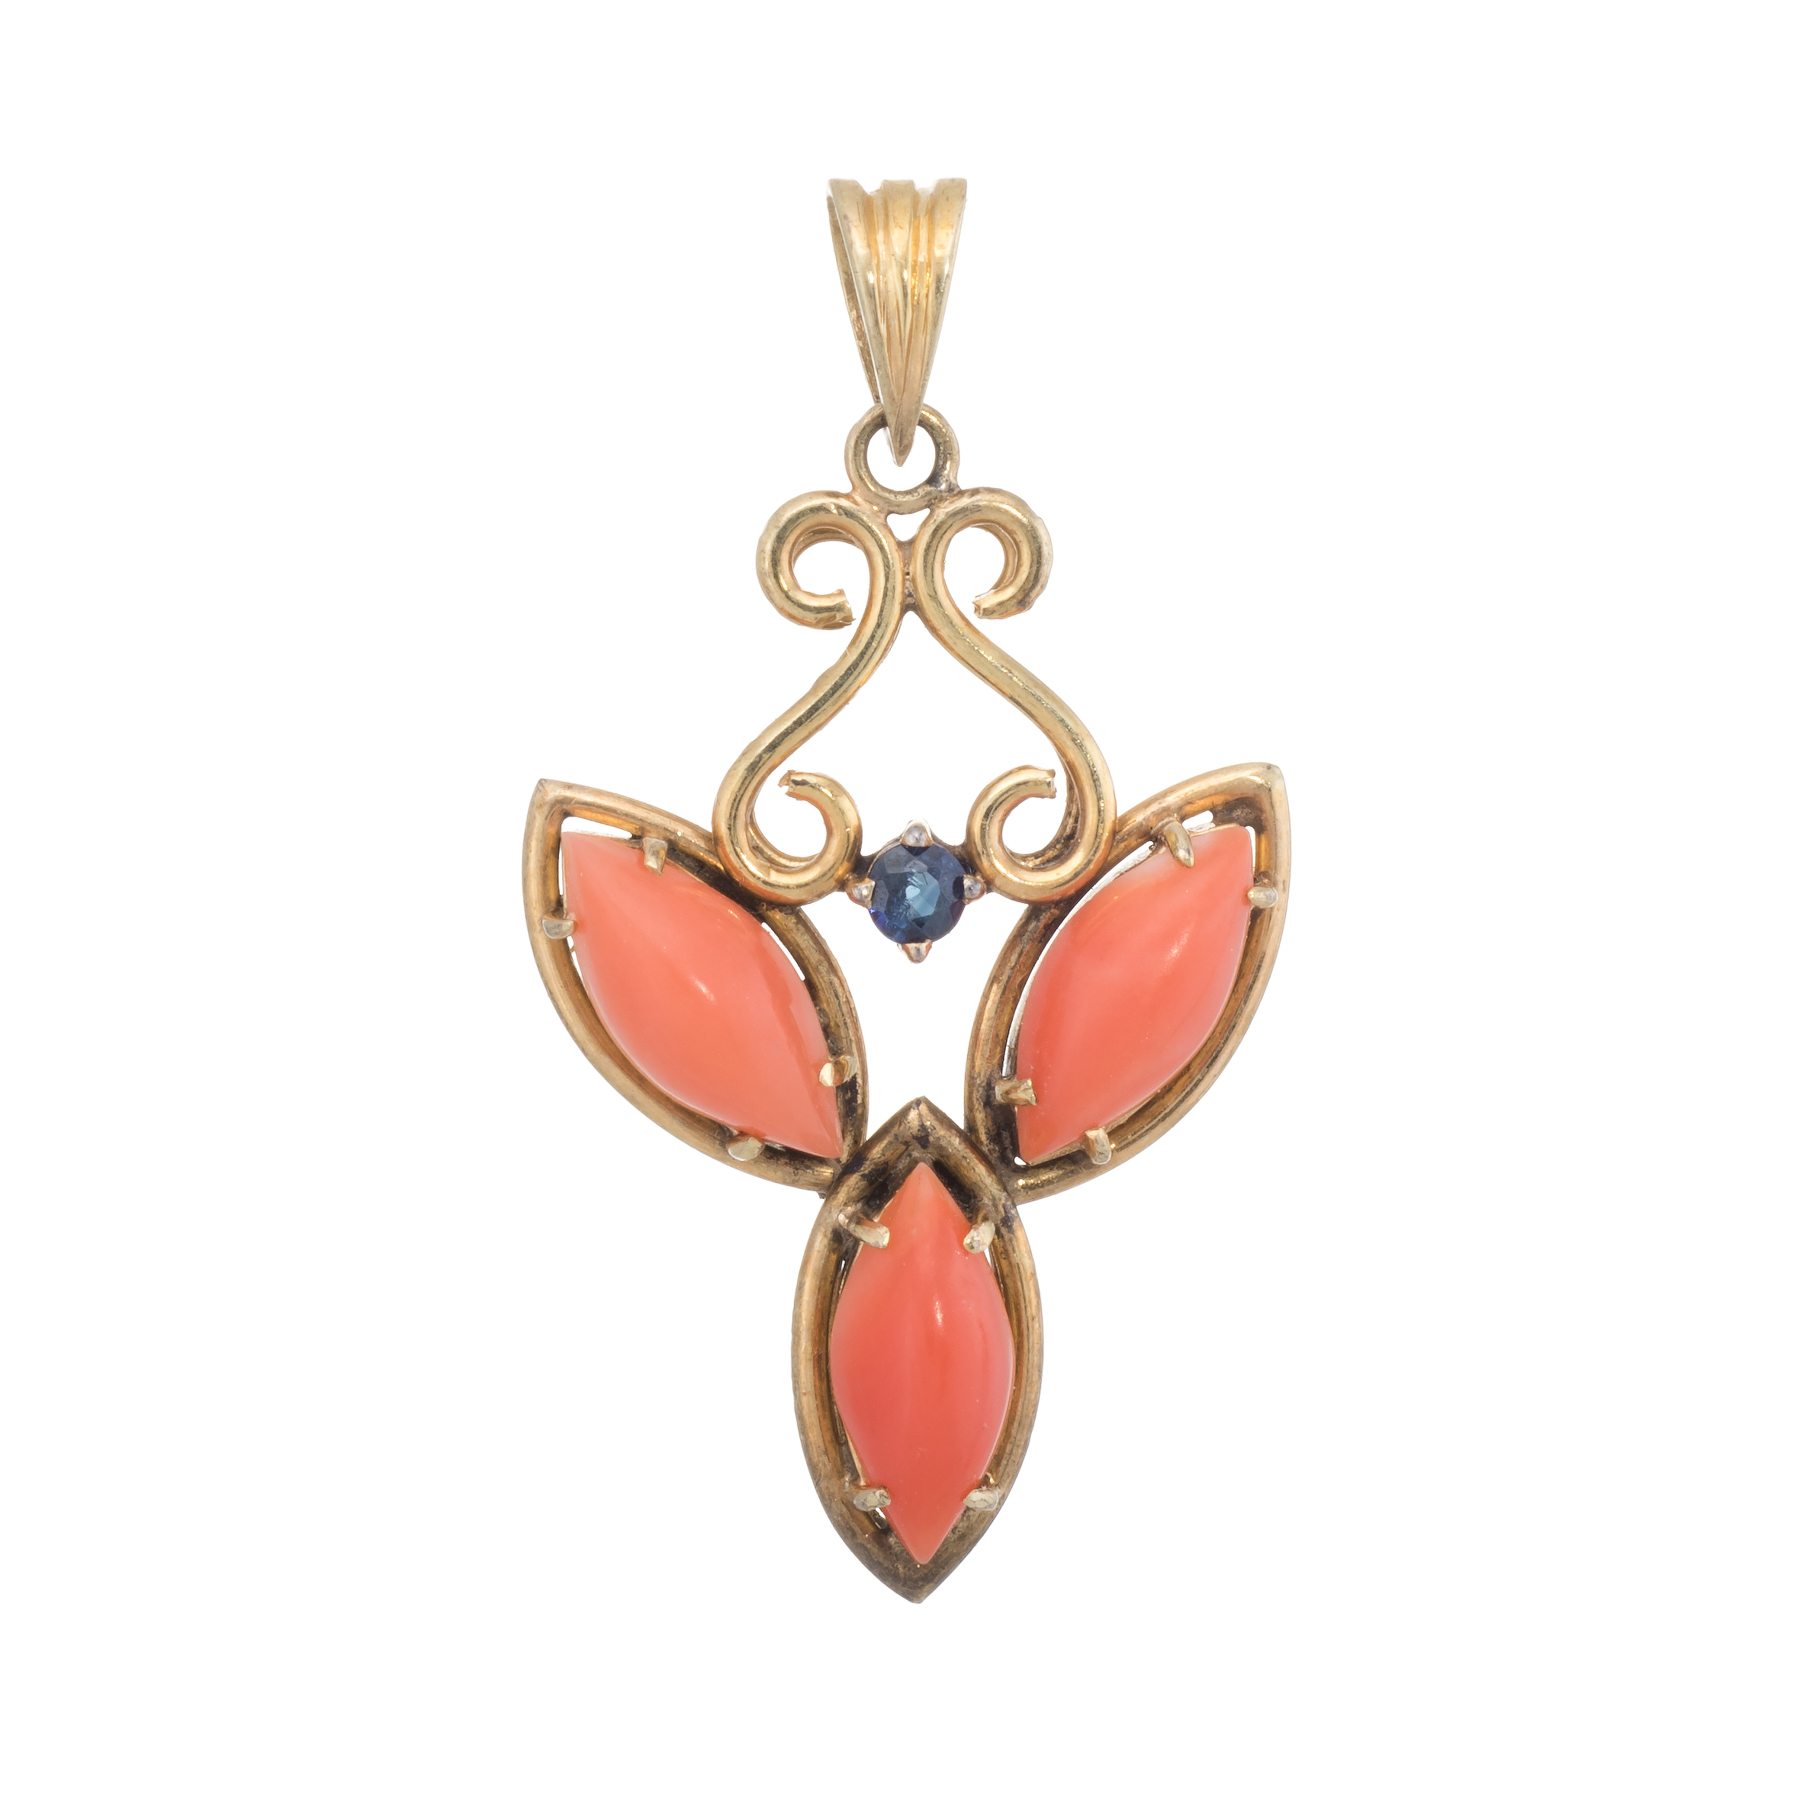 da9fc0b34 Details about Coral Sapphire Pendant Vintage 14k Yellow Gold Estate Fine  Jewelry Heirloom